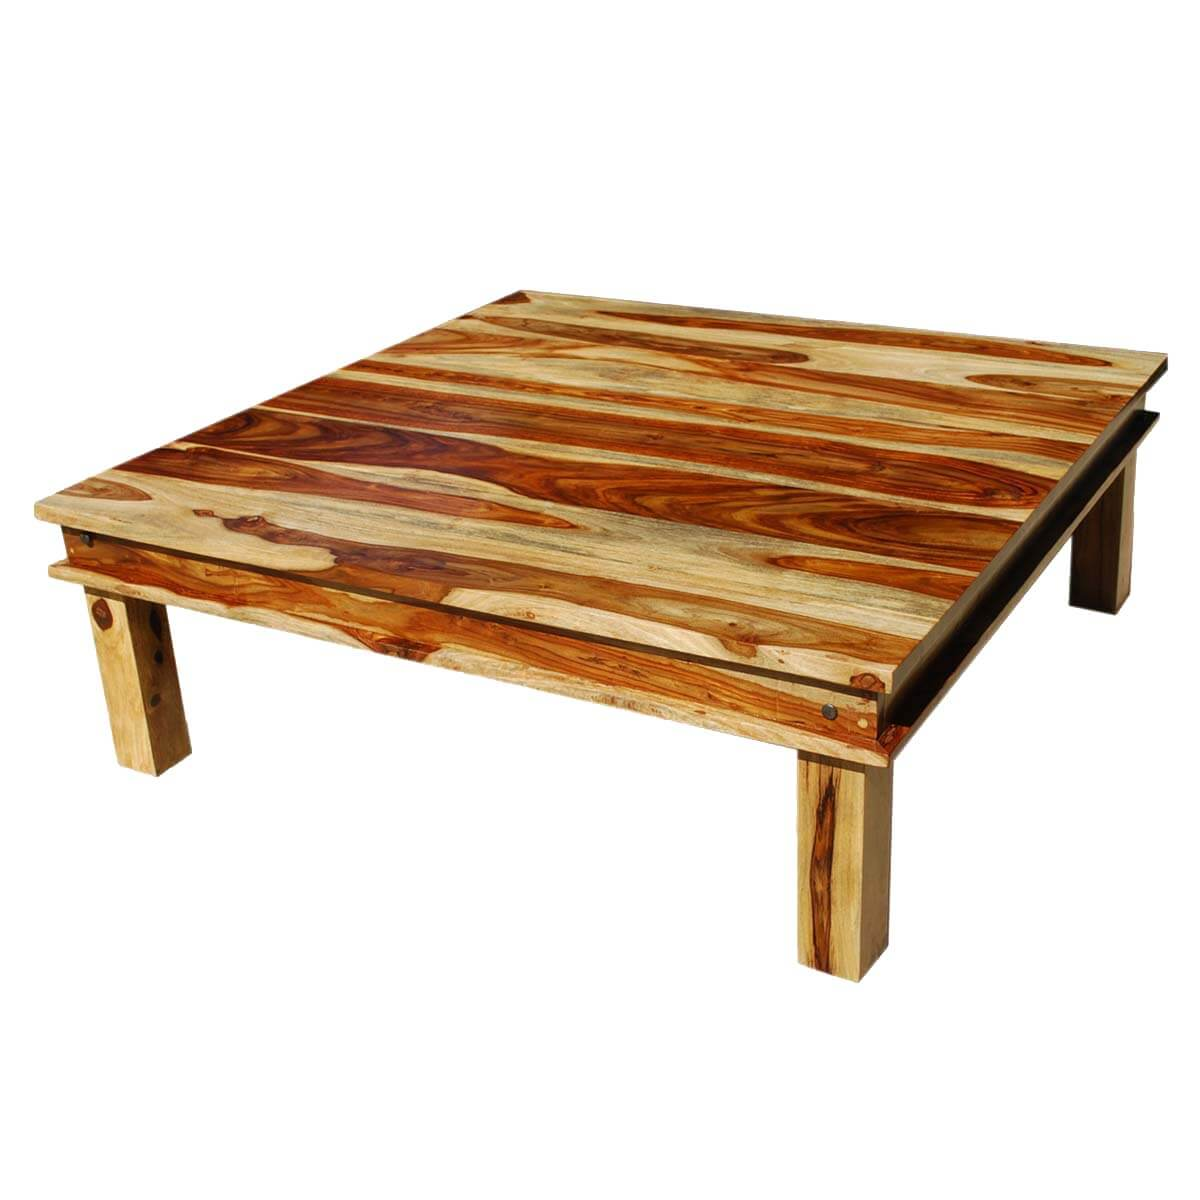 Coffee Tables Images Large Square Wood Rustic Coffee Table